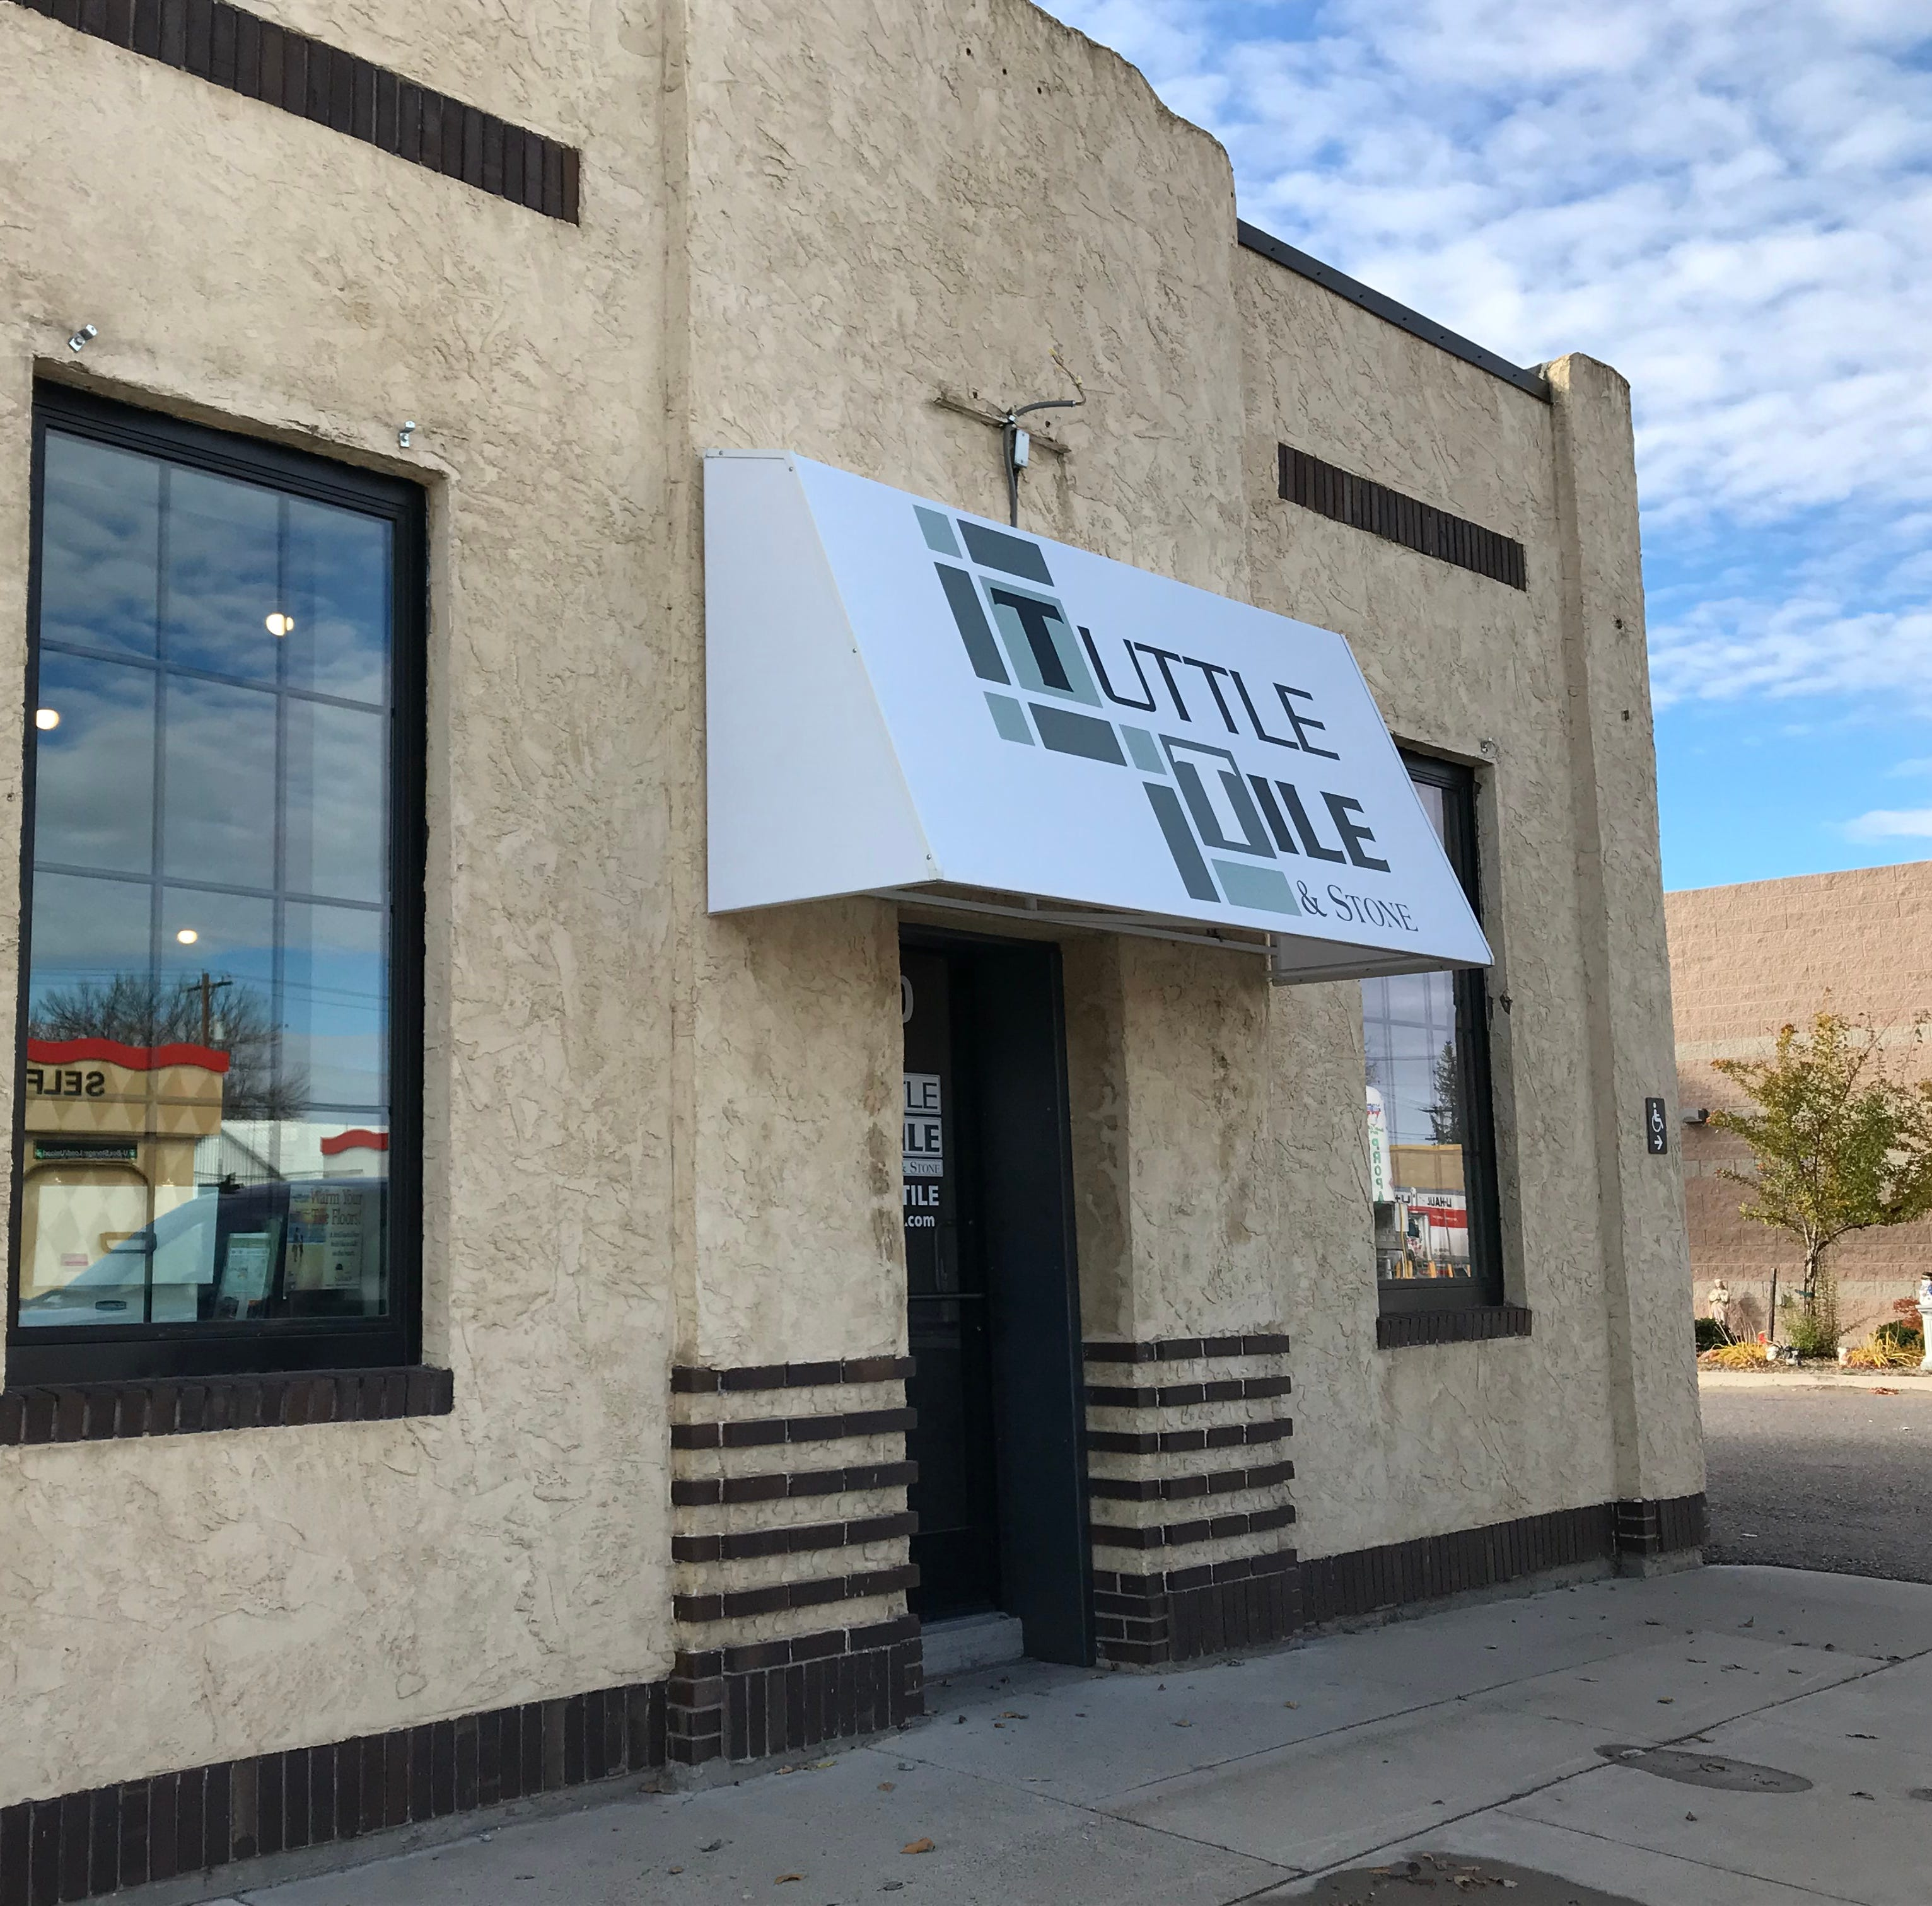 Tuttle Tile open for business after move, expansion